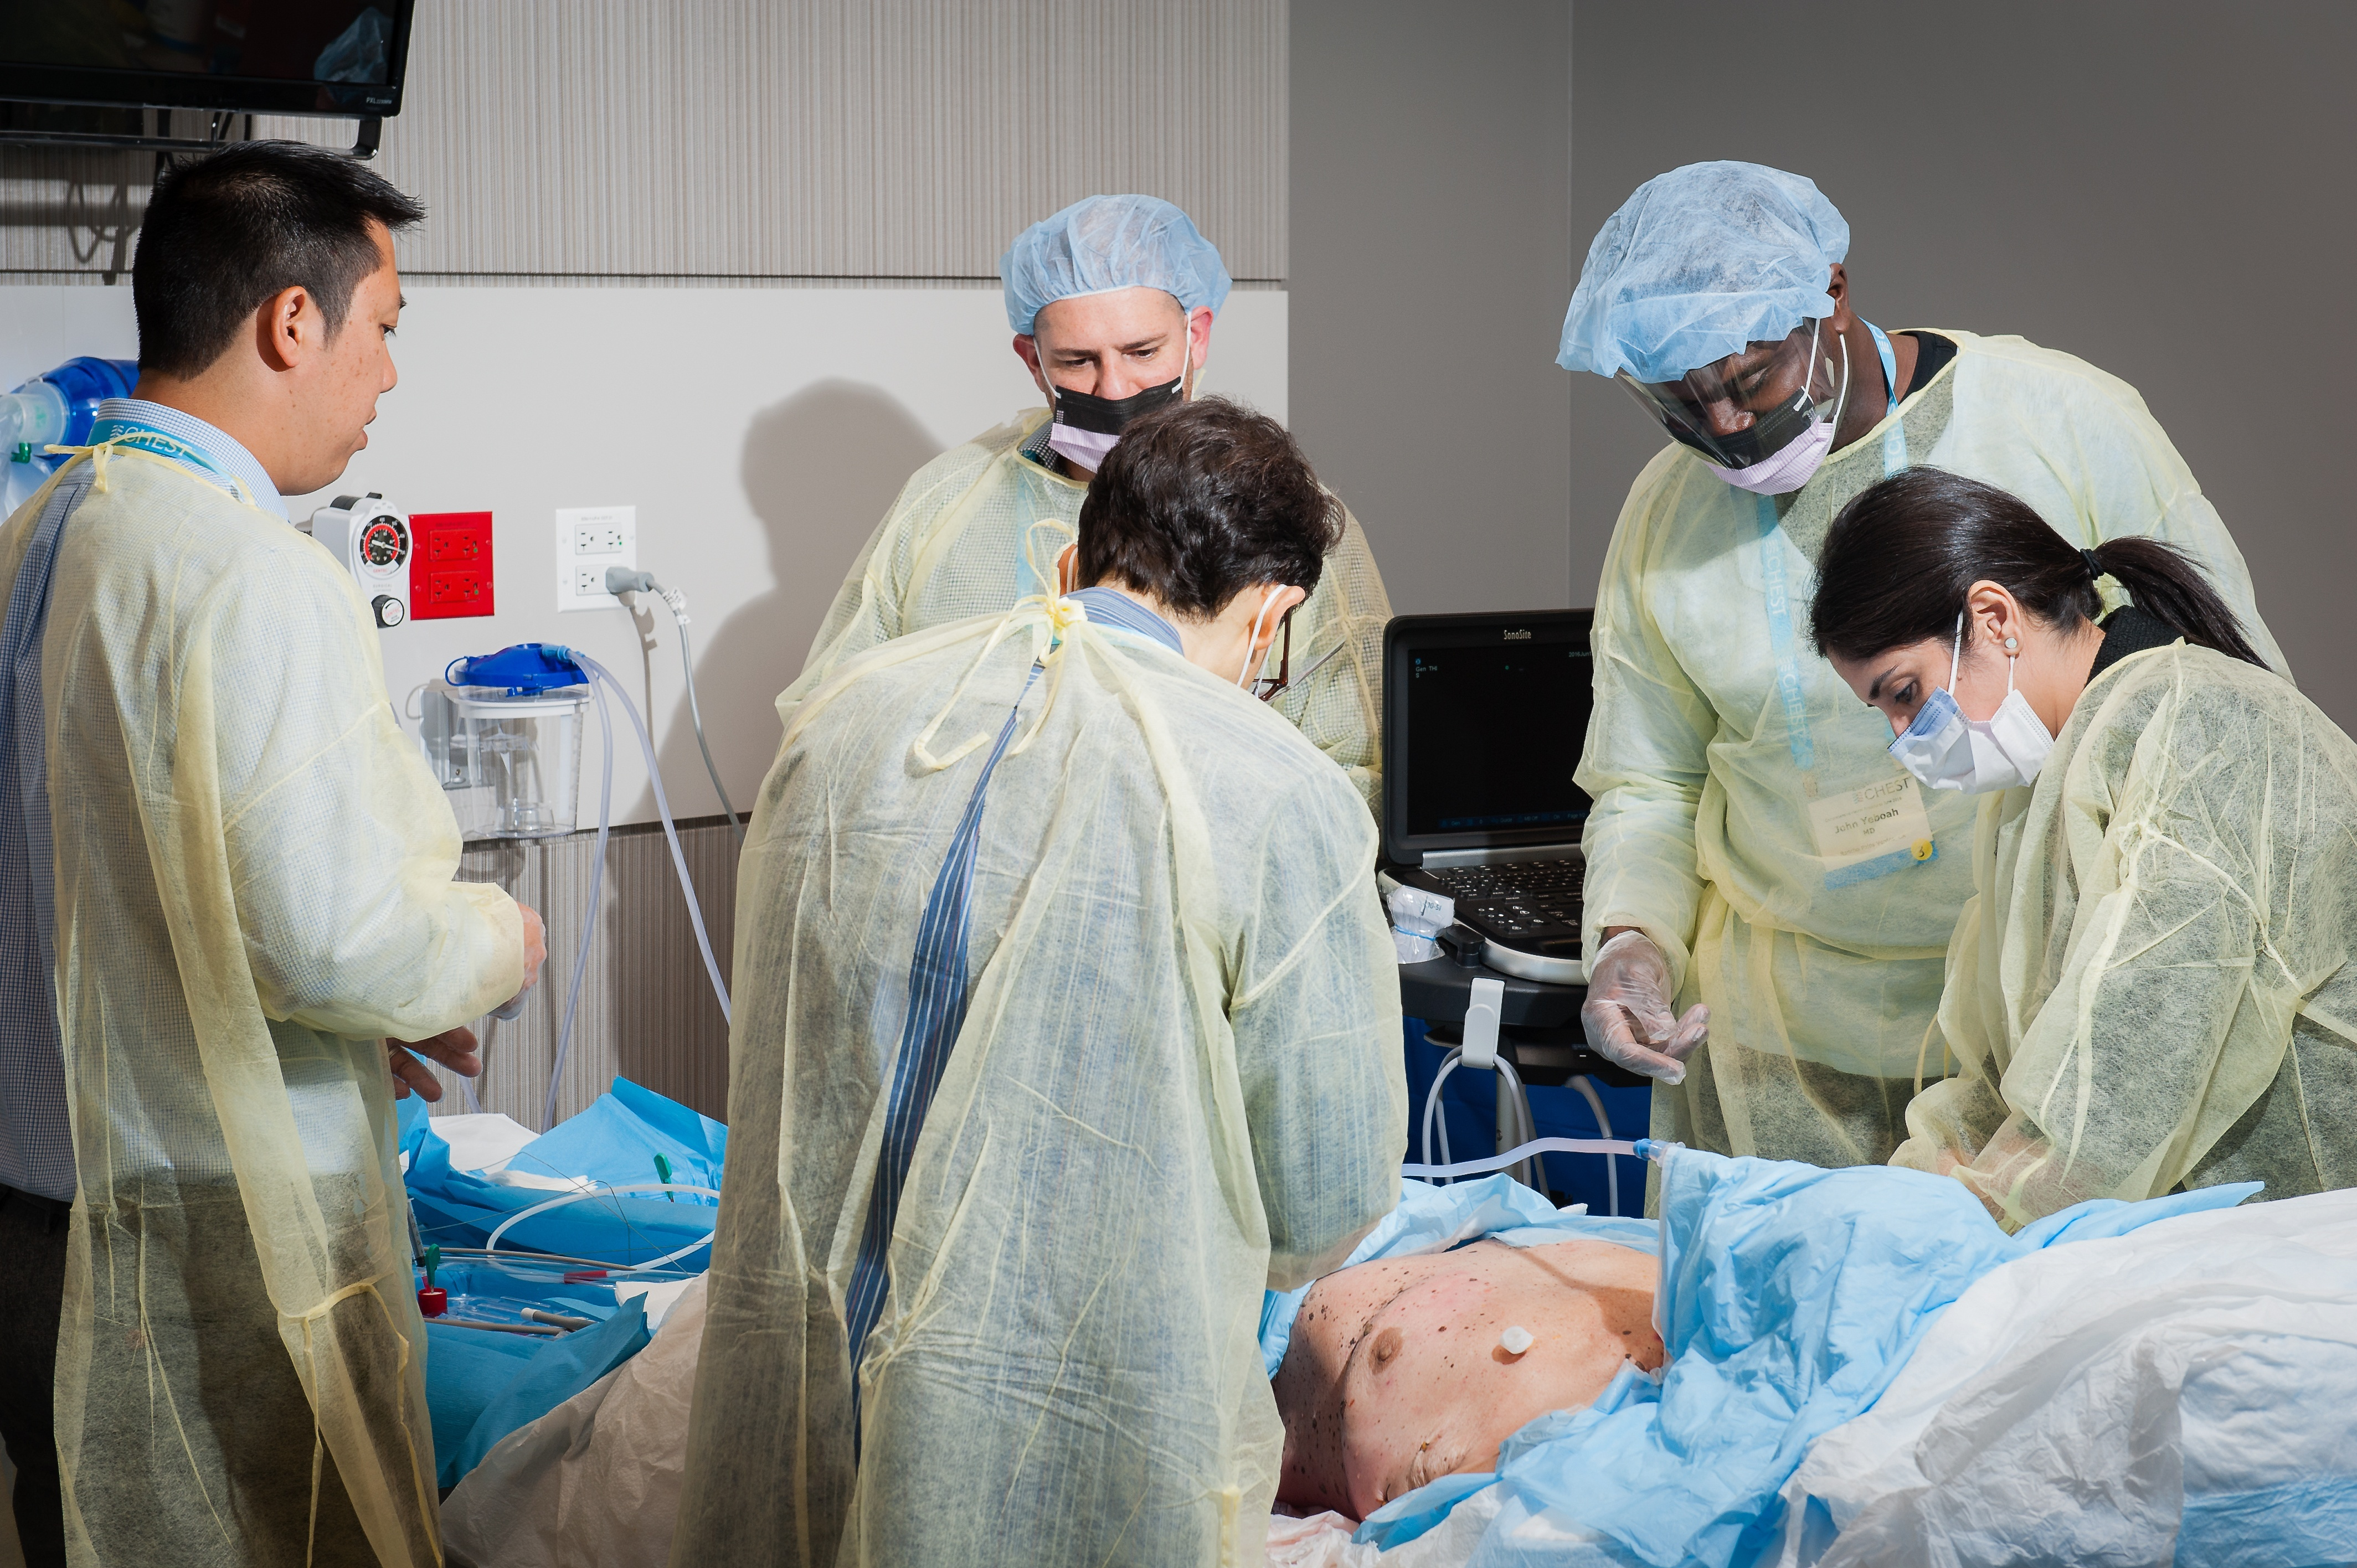 Chest tube insertion with cadavers